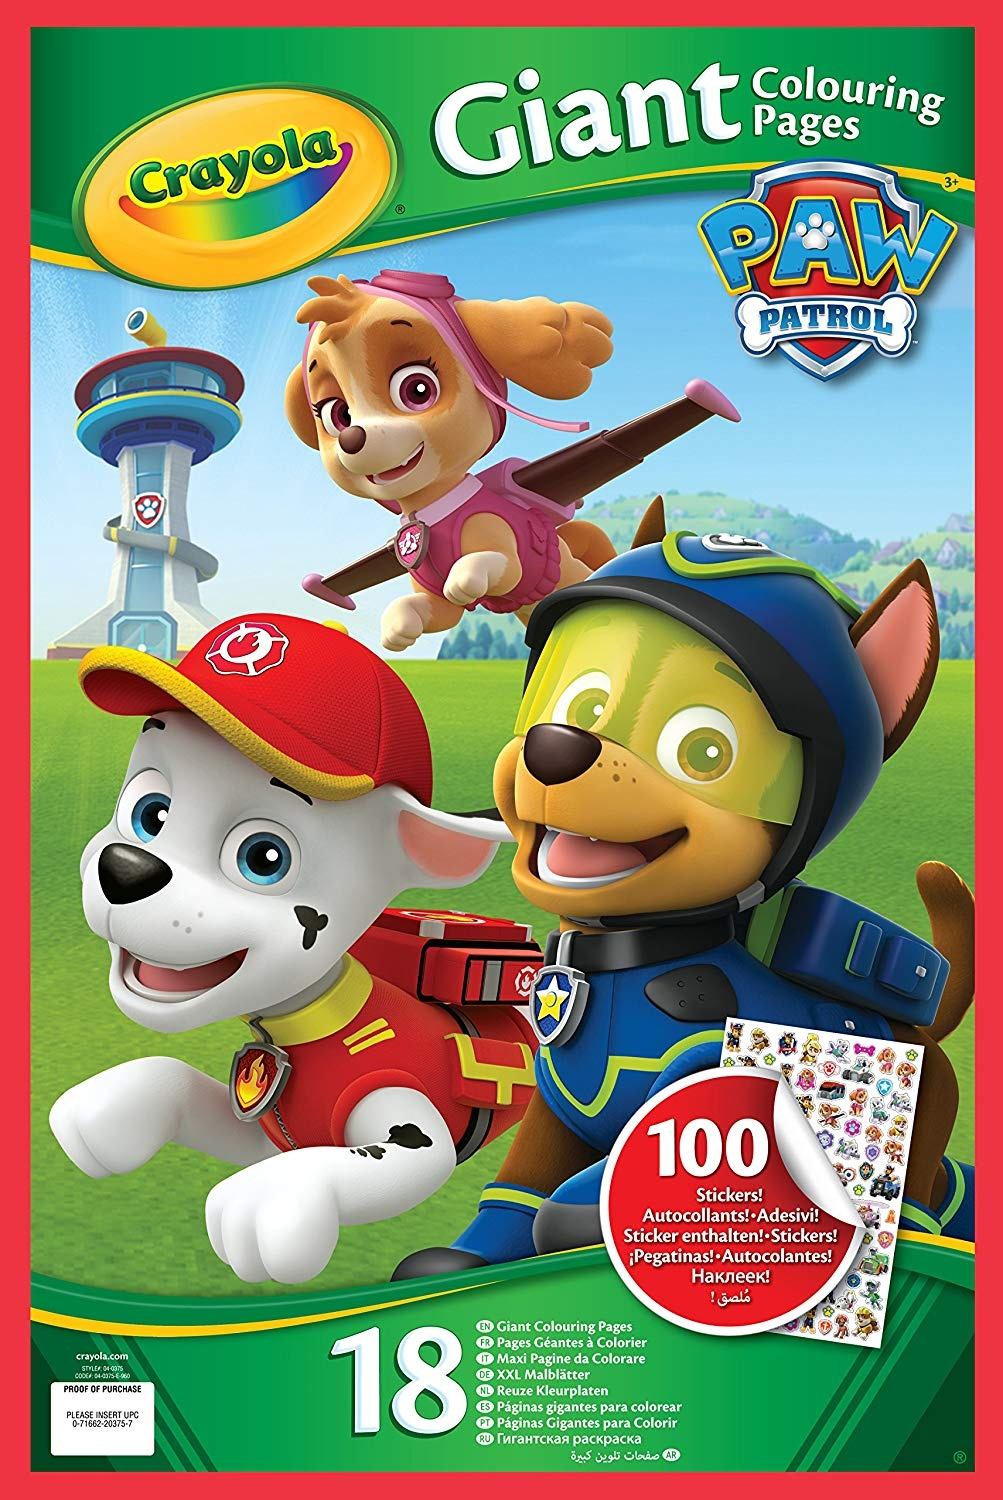 Crayola Jumbo Paw Patrol Page Colouring Book With Stickers 04 0375 E 000